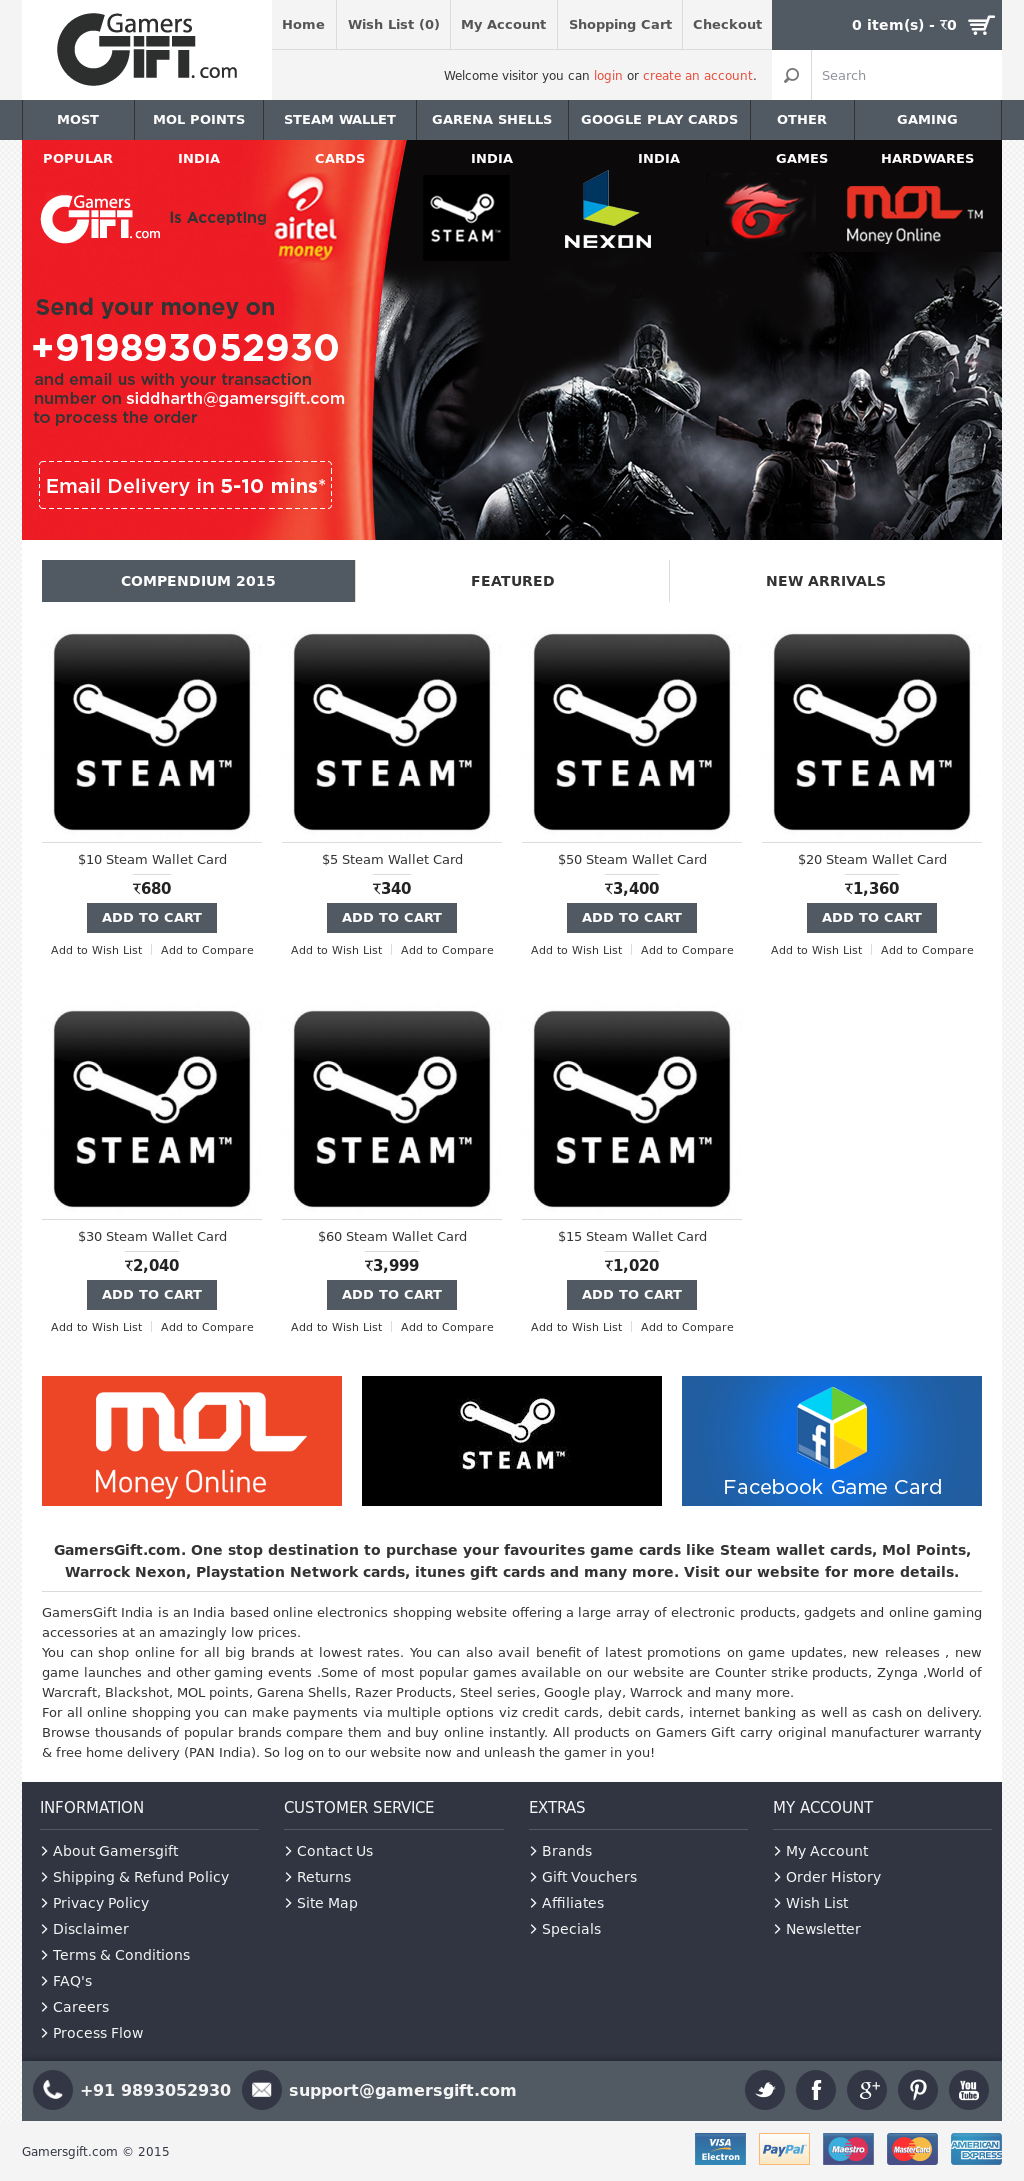 Owler Reports Press Release Gamersgift Steam Wallet Cards Of 20 Different Dimensions At Gamers Gift For You